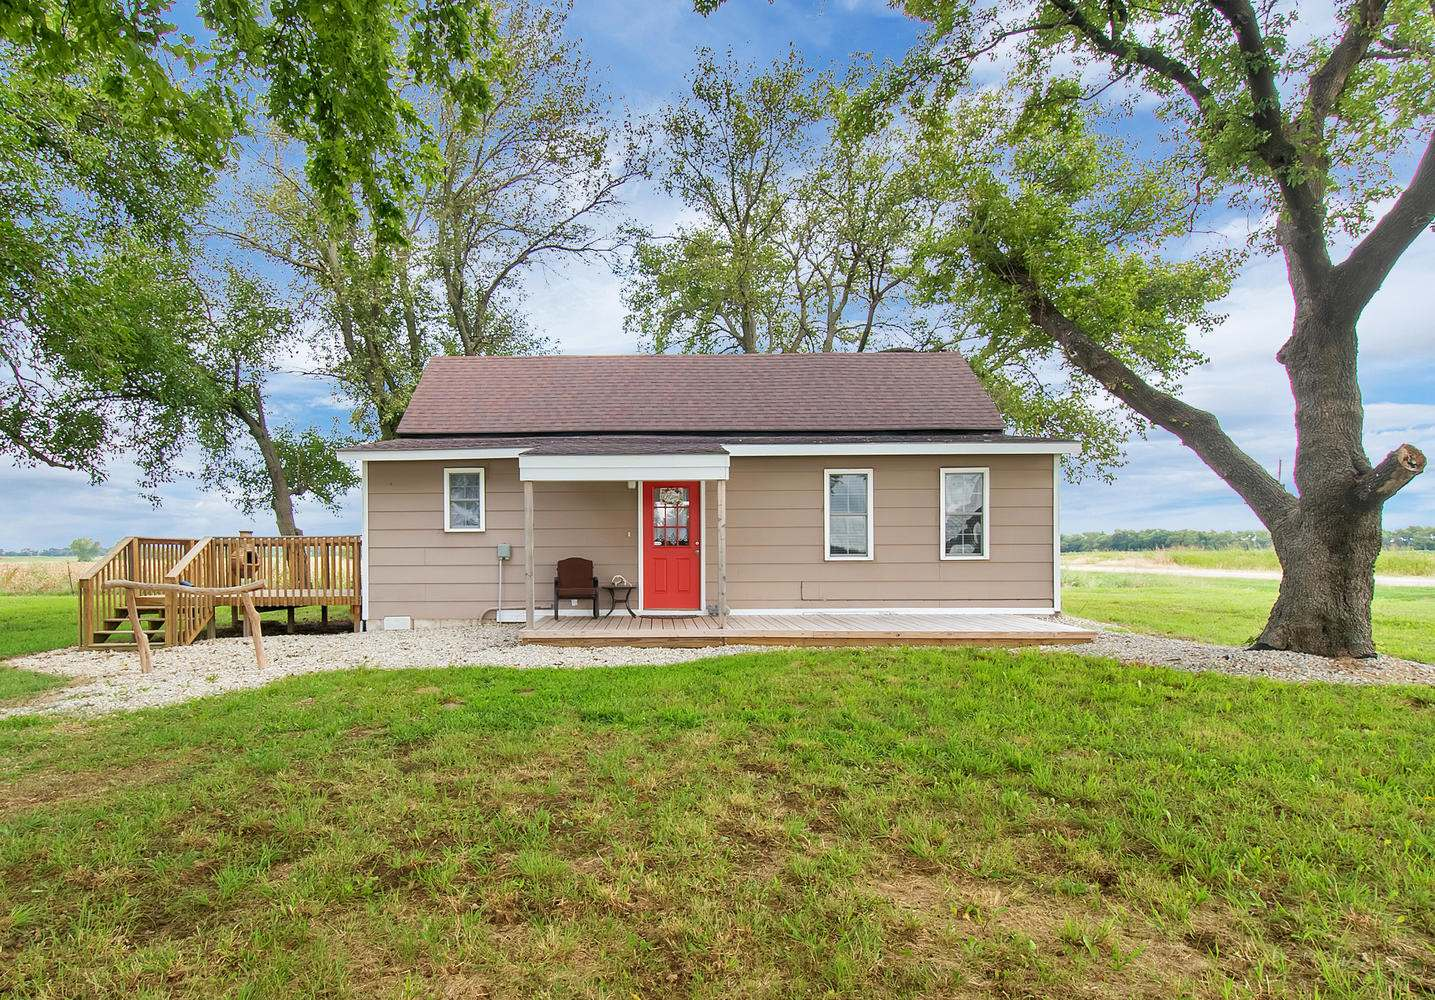 759 N Oliver Rd, Belle Plaine, KS 67013